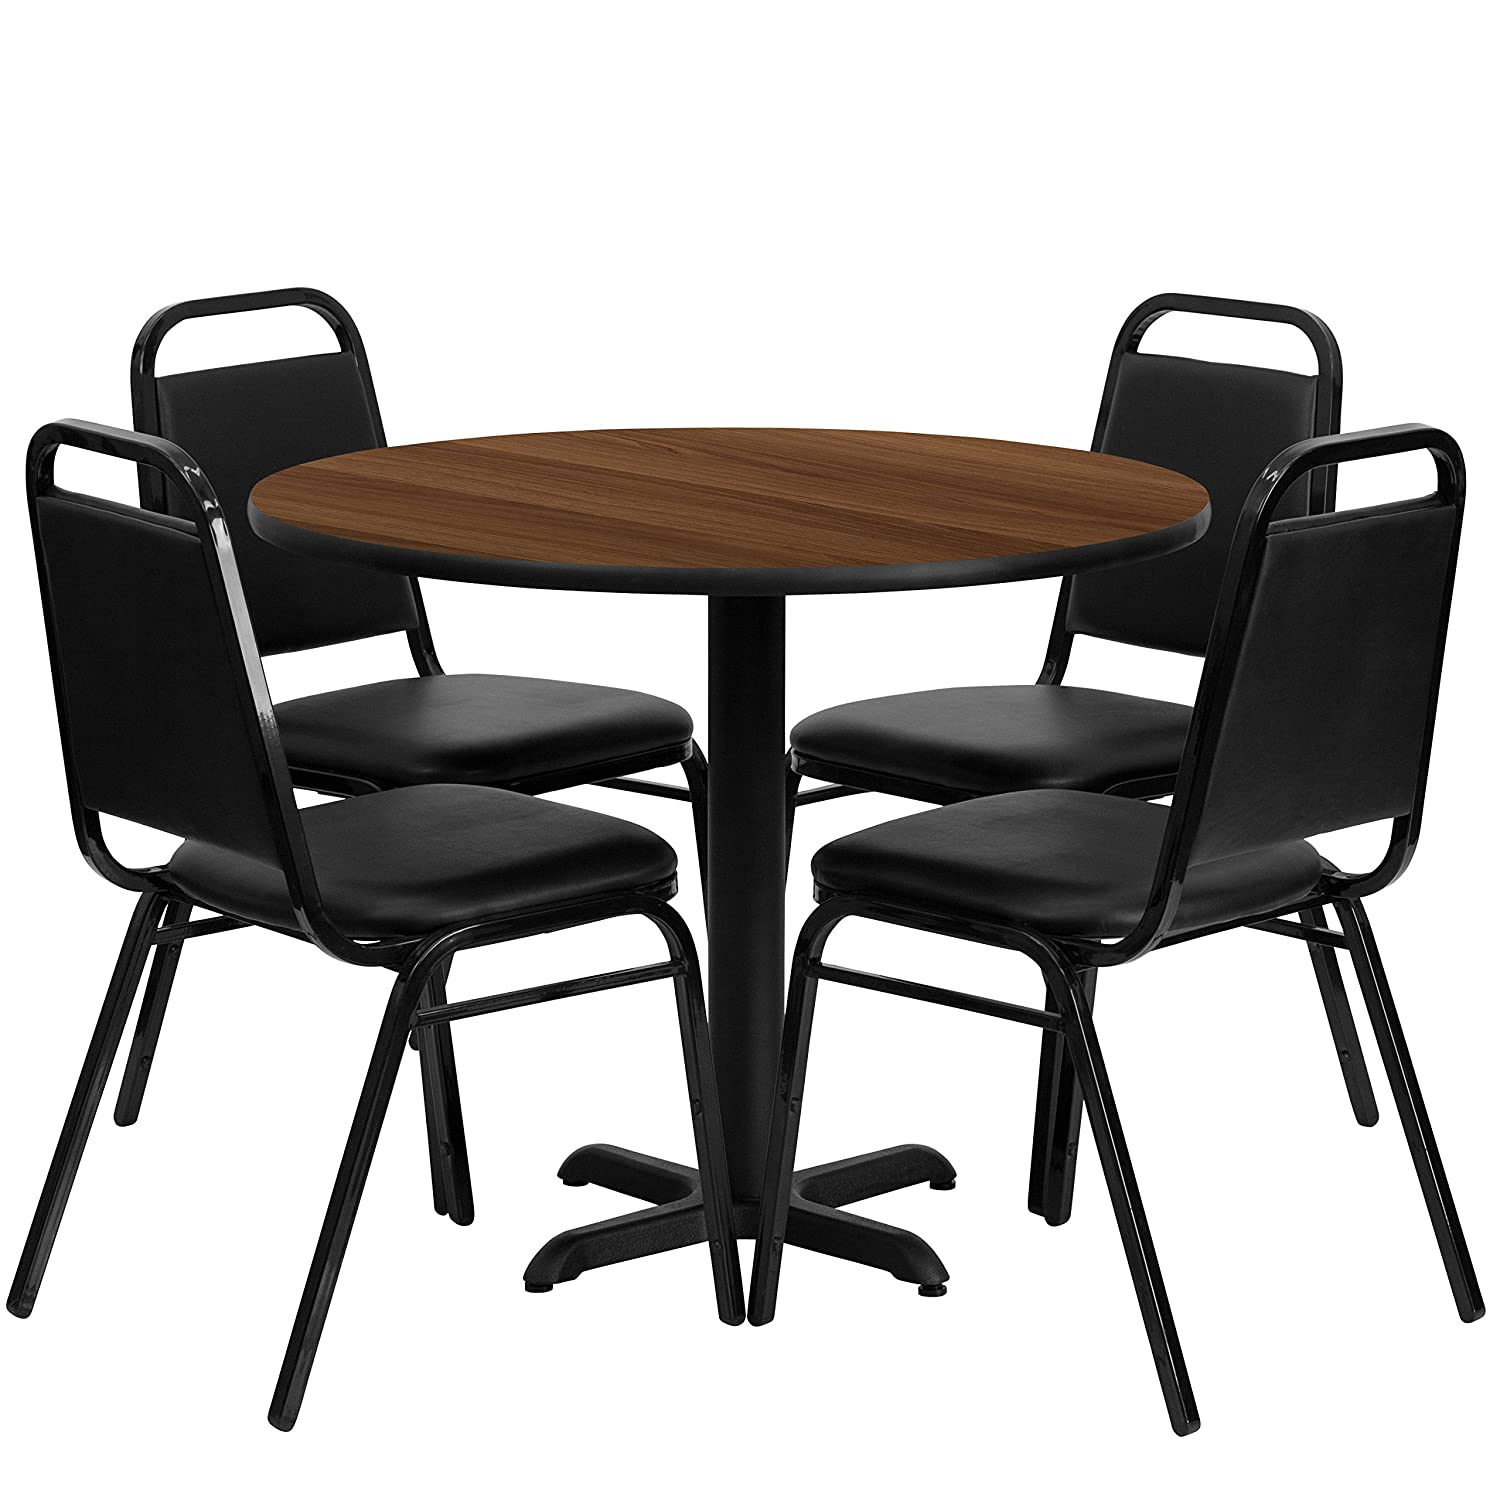 Round Table With Chairs Part - 38: Amazon.com: Flash Furniture 36u0027u0027 Round Black Laminate Table Set With 4  Black Trapezoidal Back Banquet Chairs: Kitchen U0026 Dining